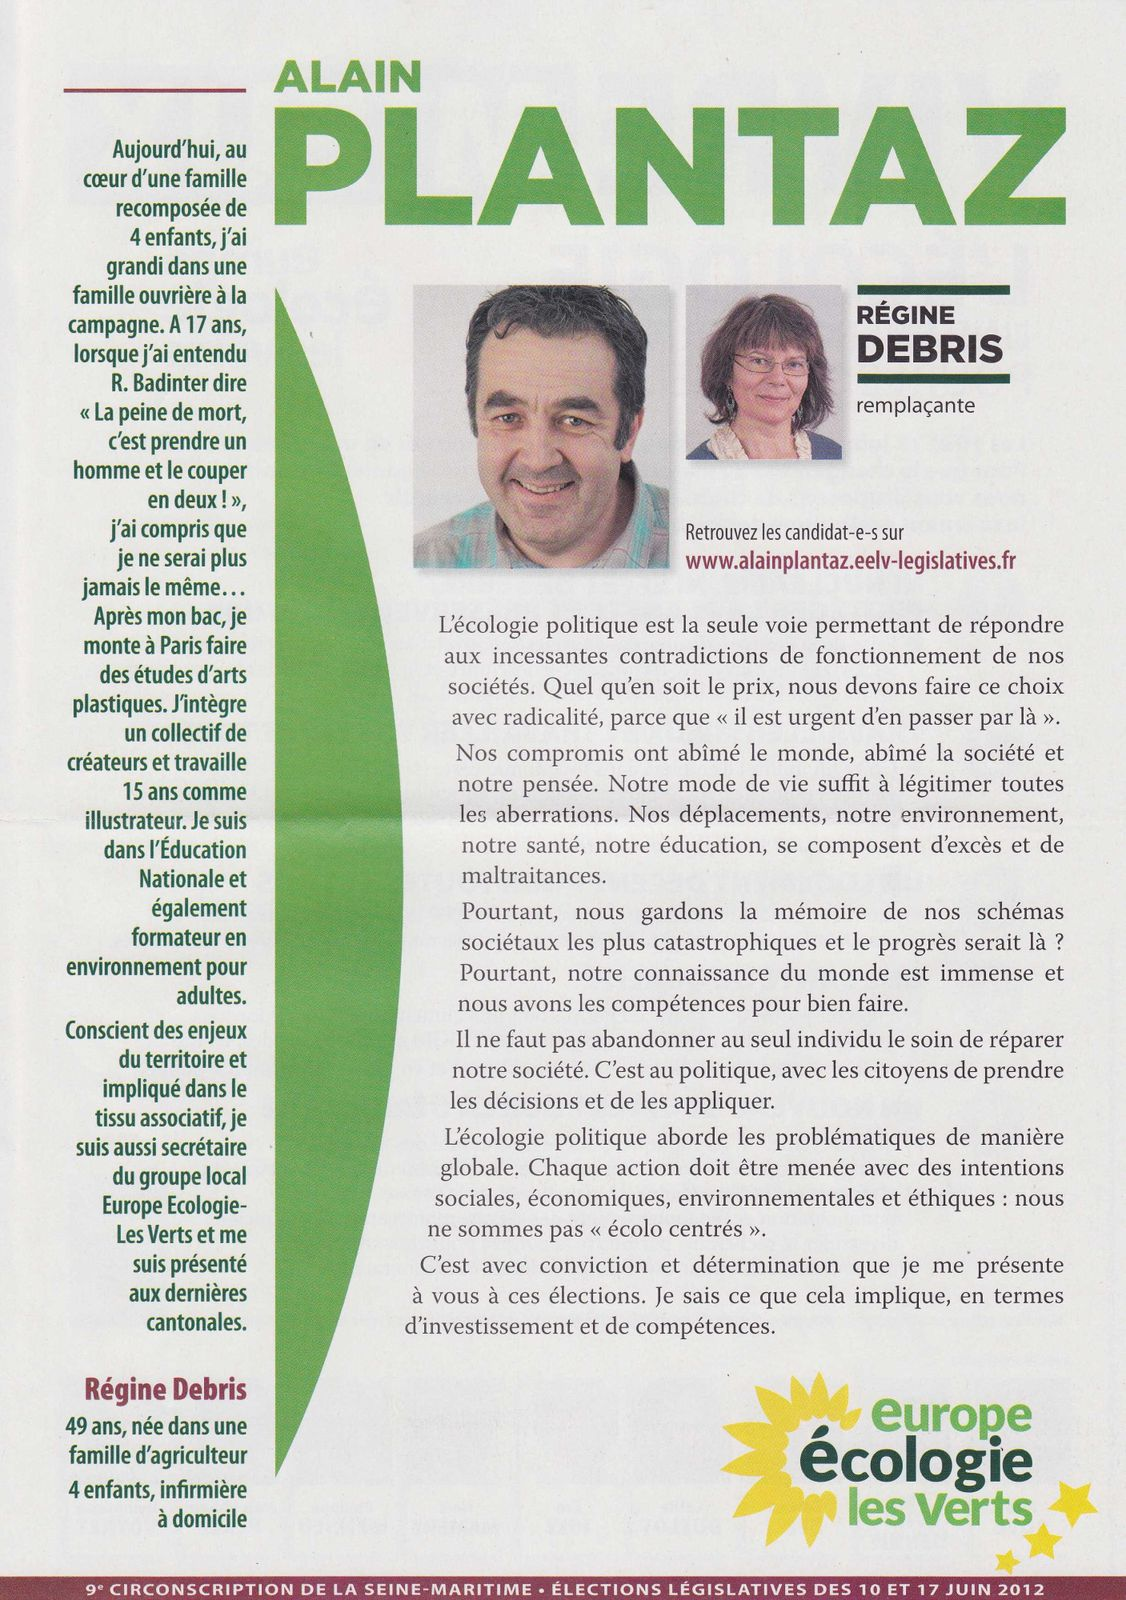 9-2012-legislative-9eme-76-Plantaz-Fecamp-Europe-Ecologie.jpg